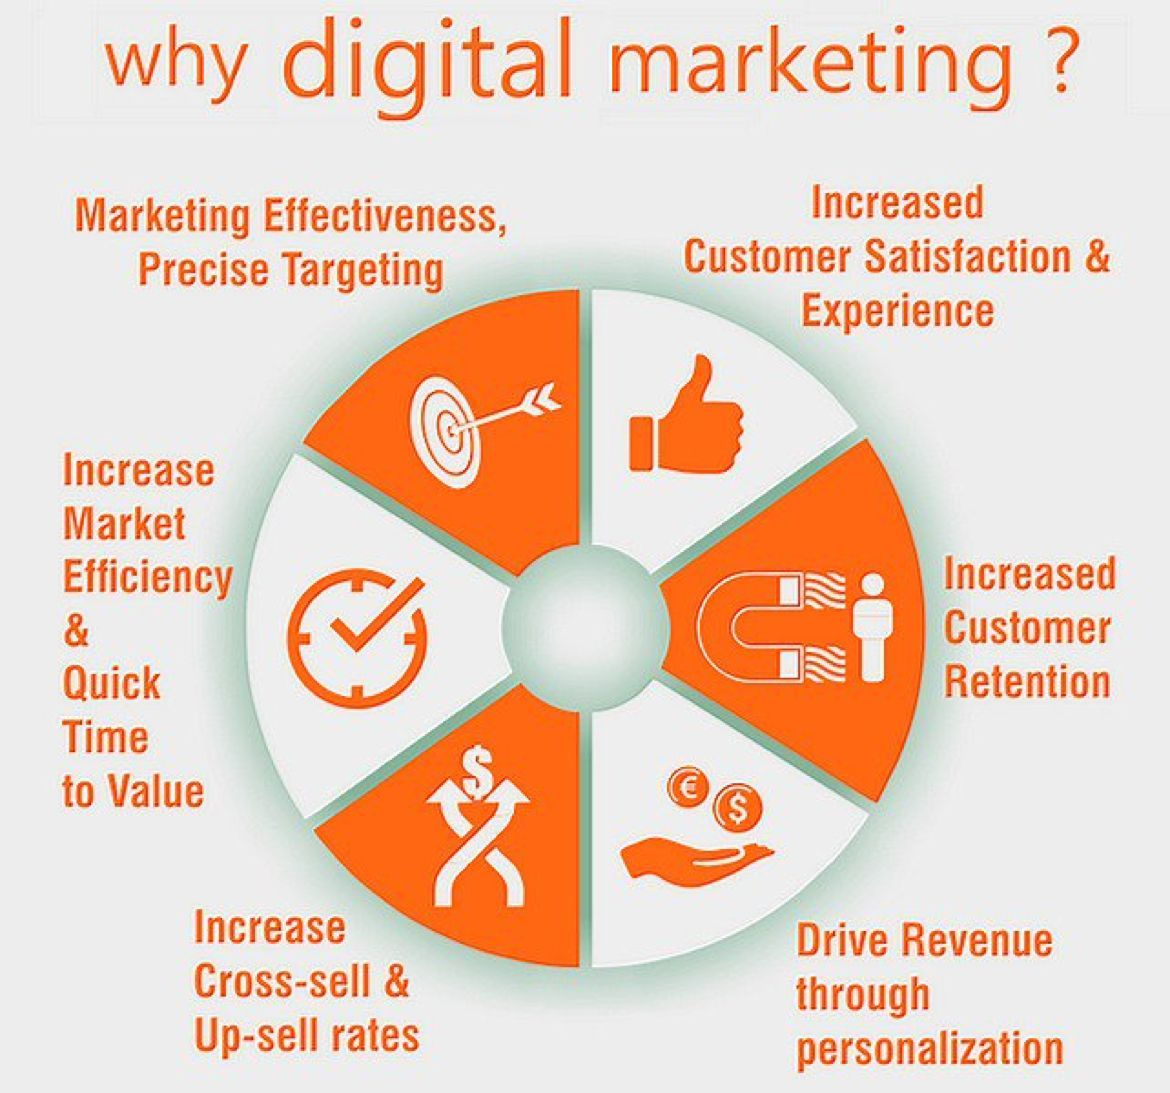 Why Digital #Marketing is Important for Your #Business [Infographic] [@ipfconline1] #DigitalMarketing #Entrepreneur #Startup #CS #CX #Sales<br>http://pic.twitter.com/nKlPMo2AkE